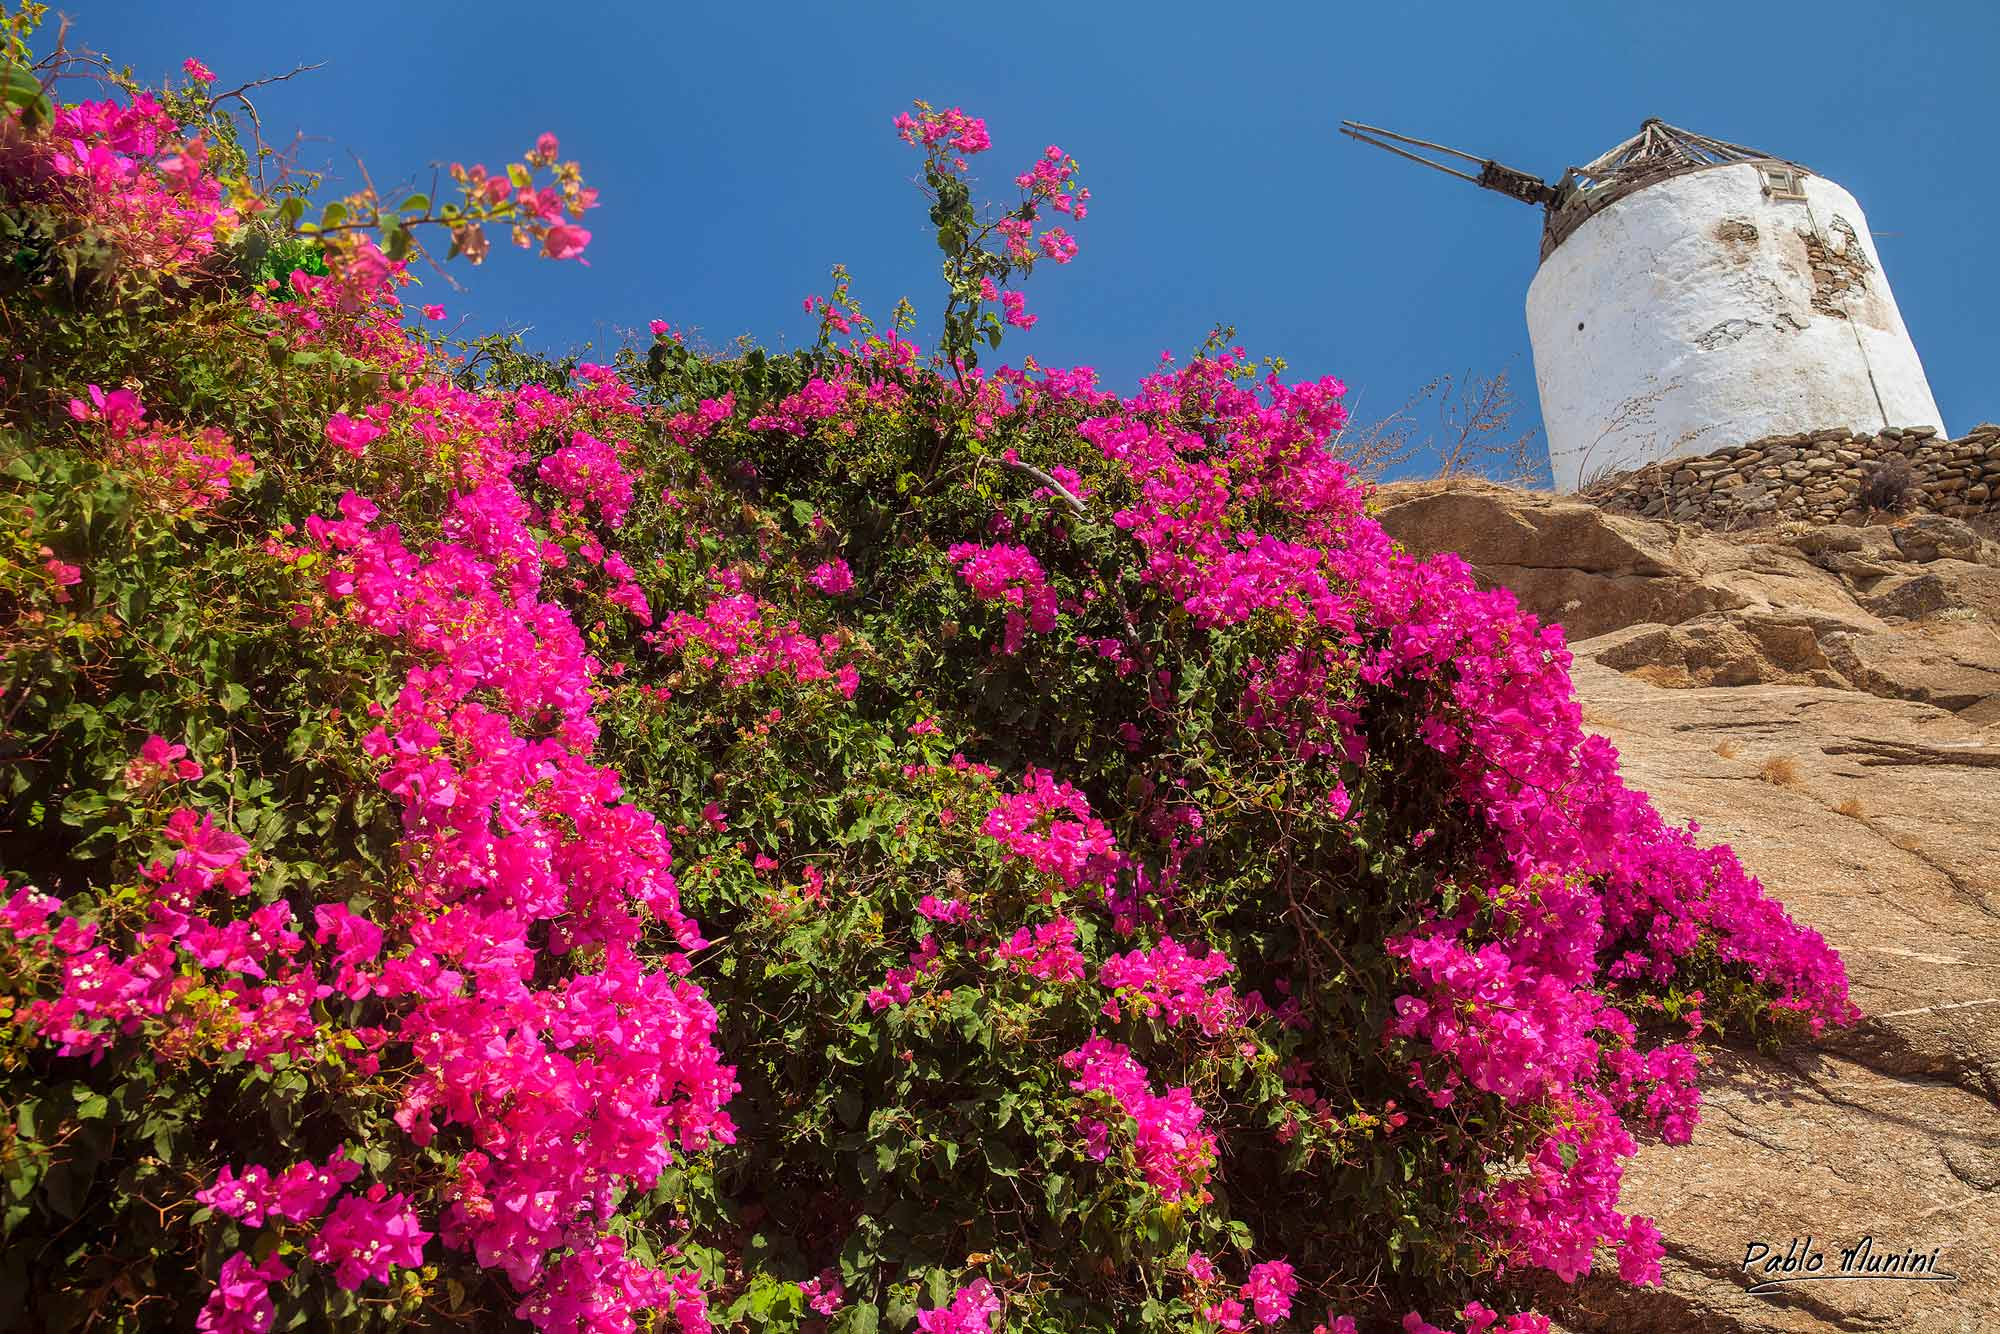 famous traditional windmill overlooking Mykonos port, island of Mykonos, Cyclades.Mykonos images.Greece cyclades islands photo gallery.cyclades images